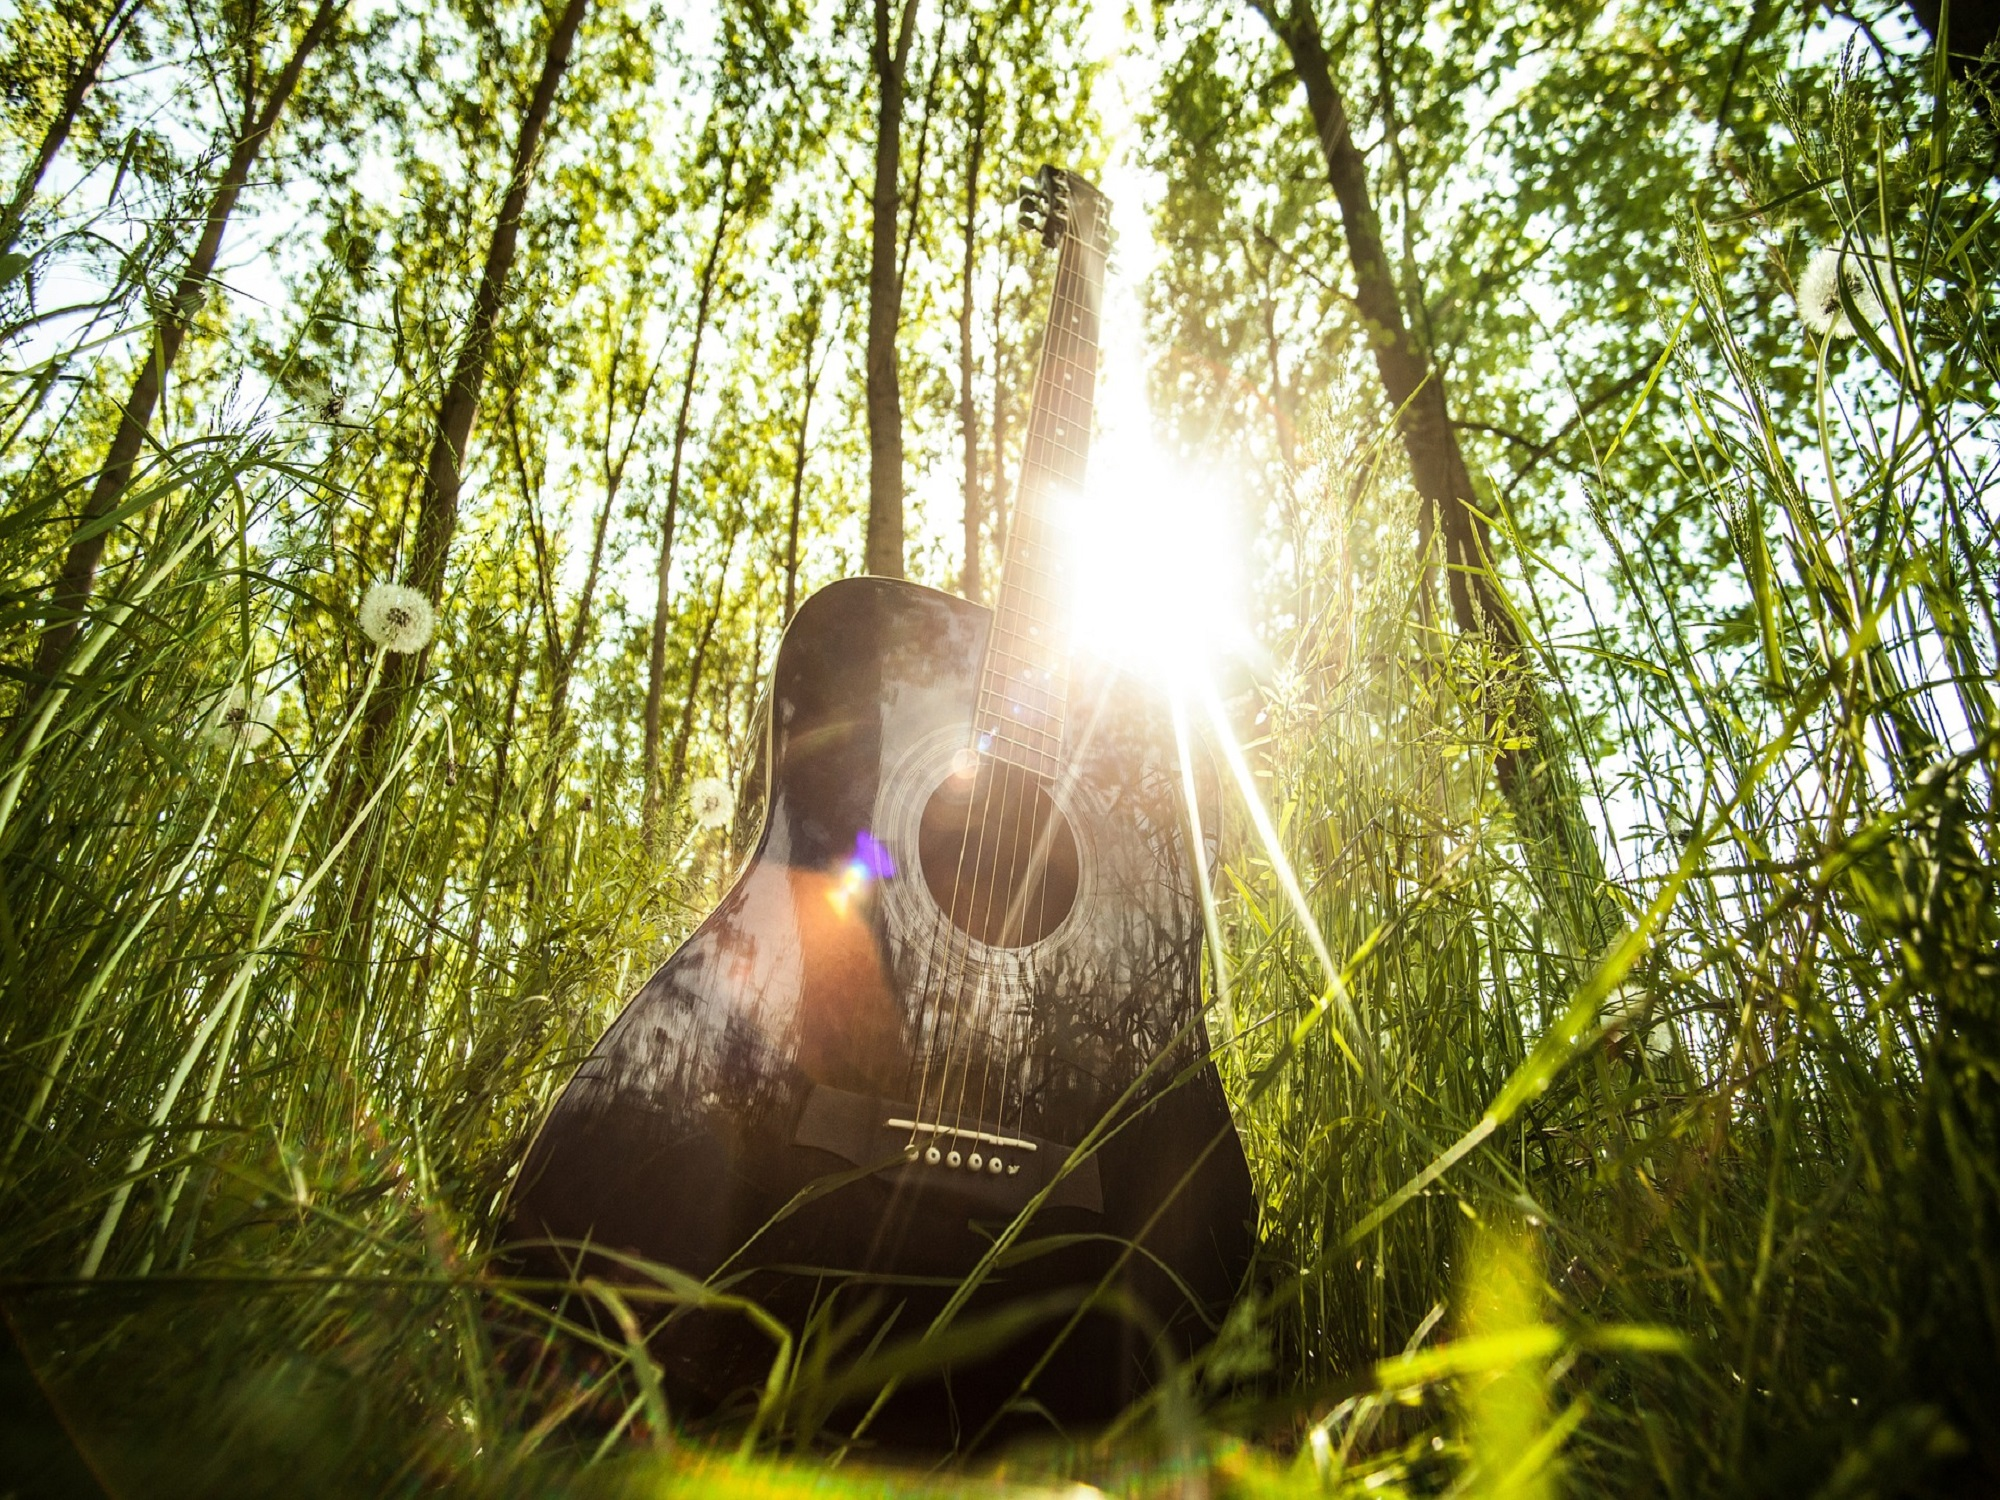 An acoustic guitar in nature